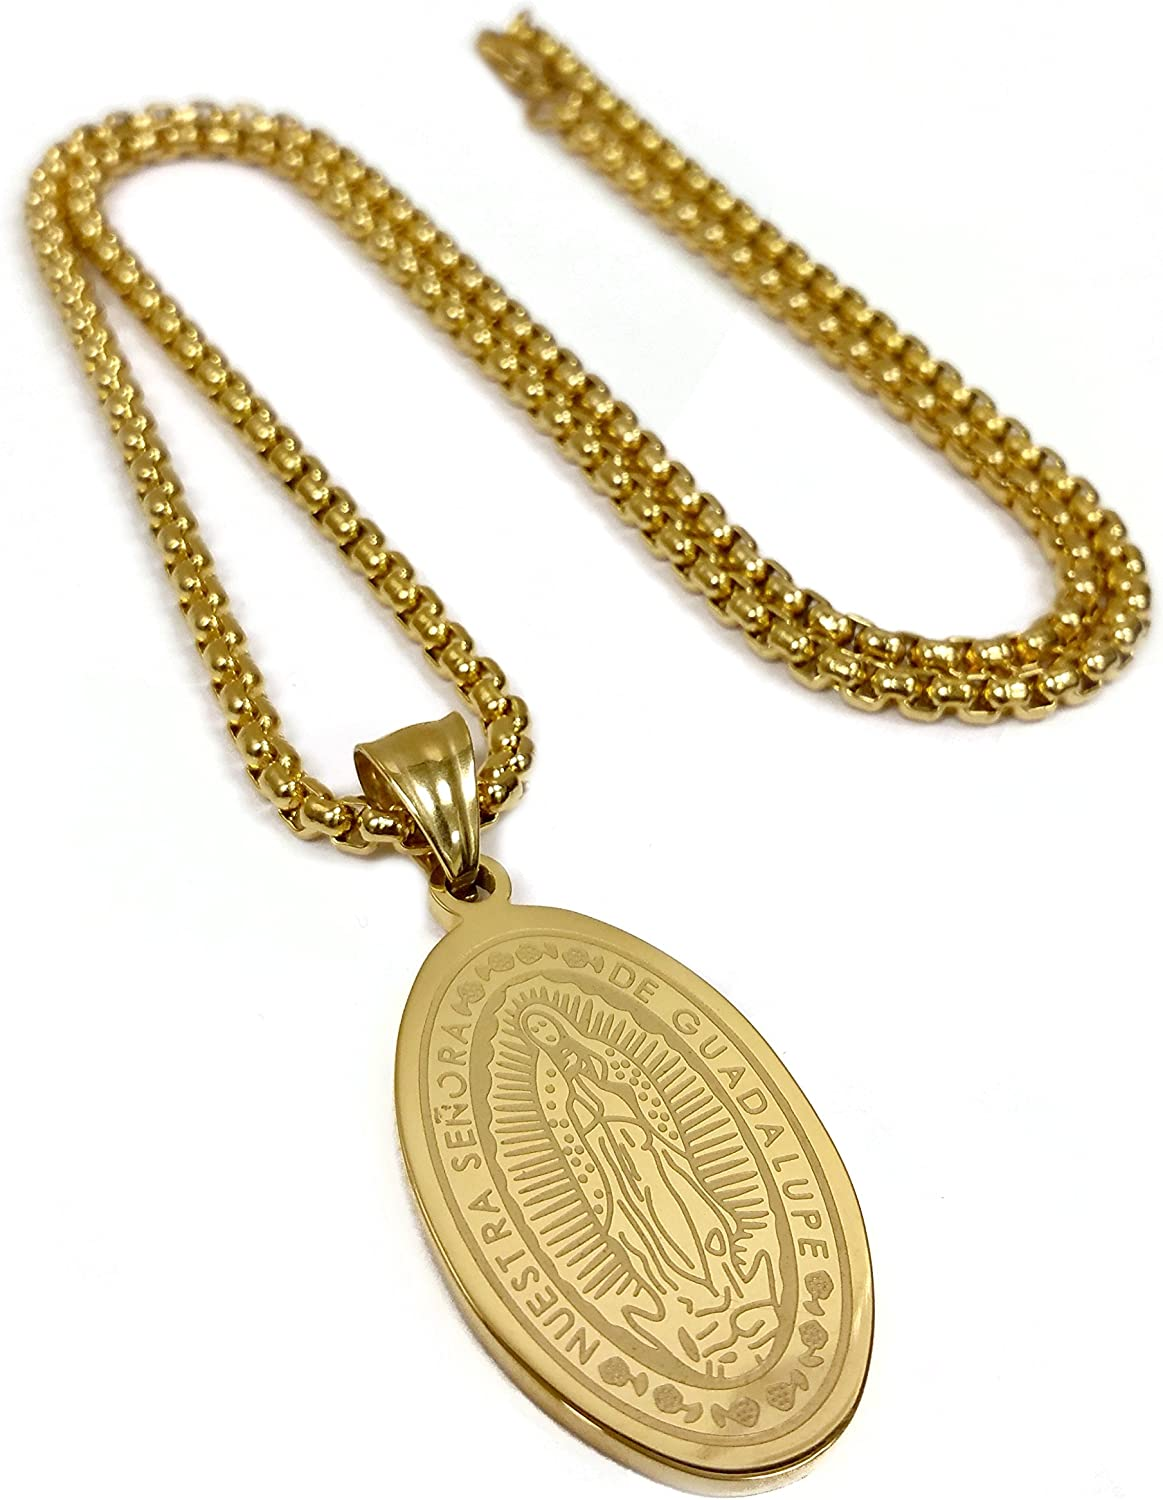 DiamondJewelryNY 14kt Gold Filled Immaculate Conception Pendant